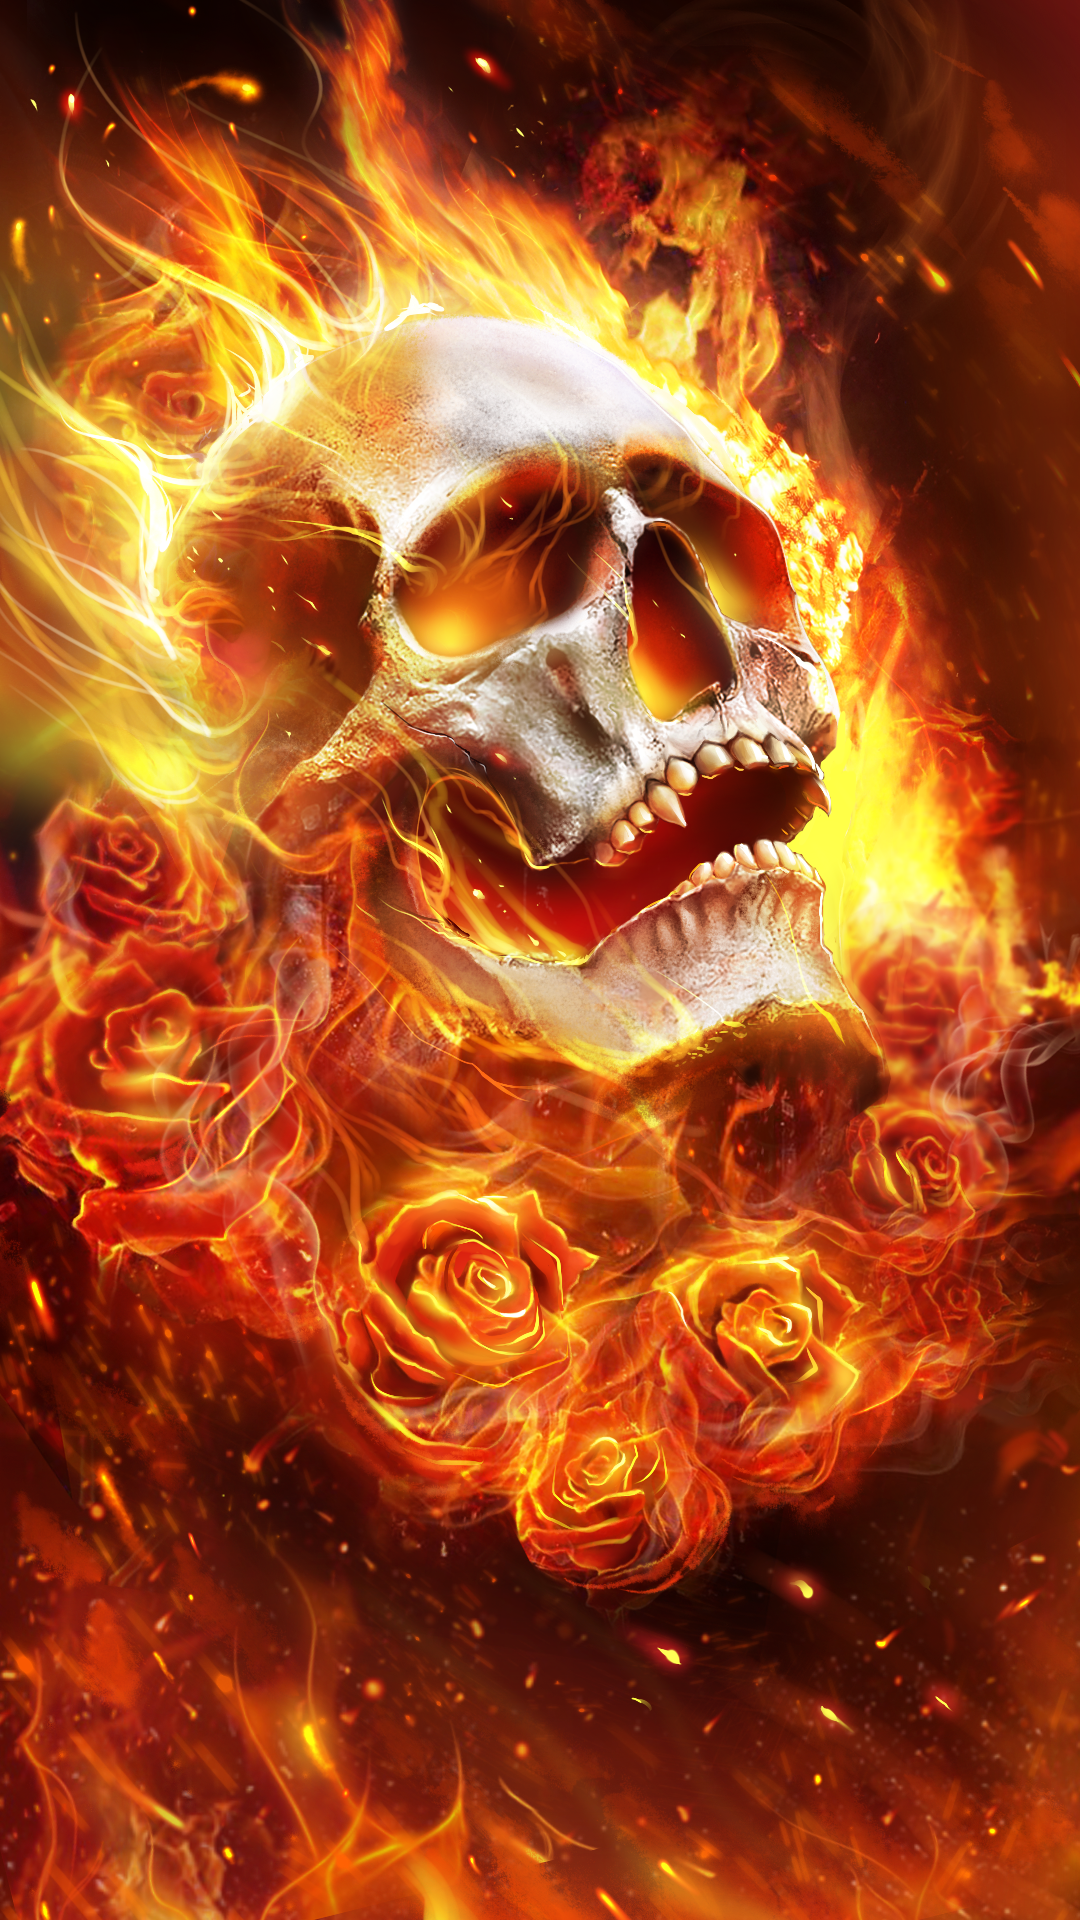 Flame skull with roses! Beautiful live wallpaper Android